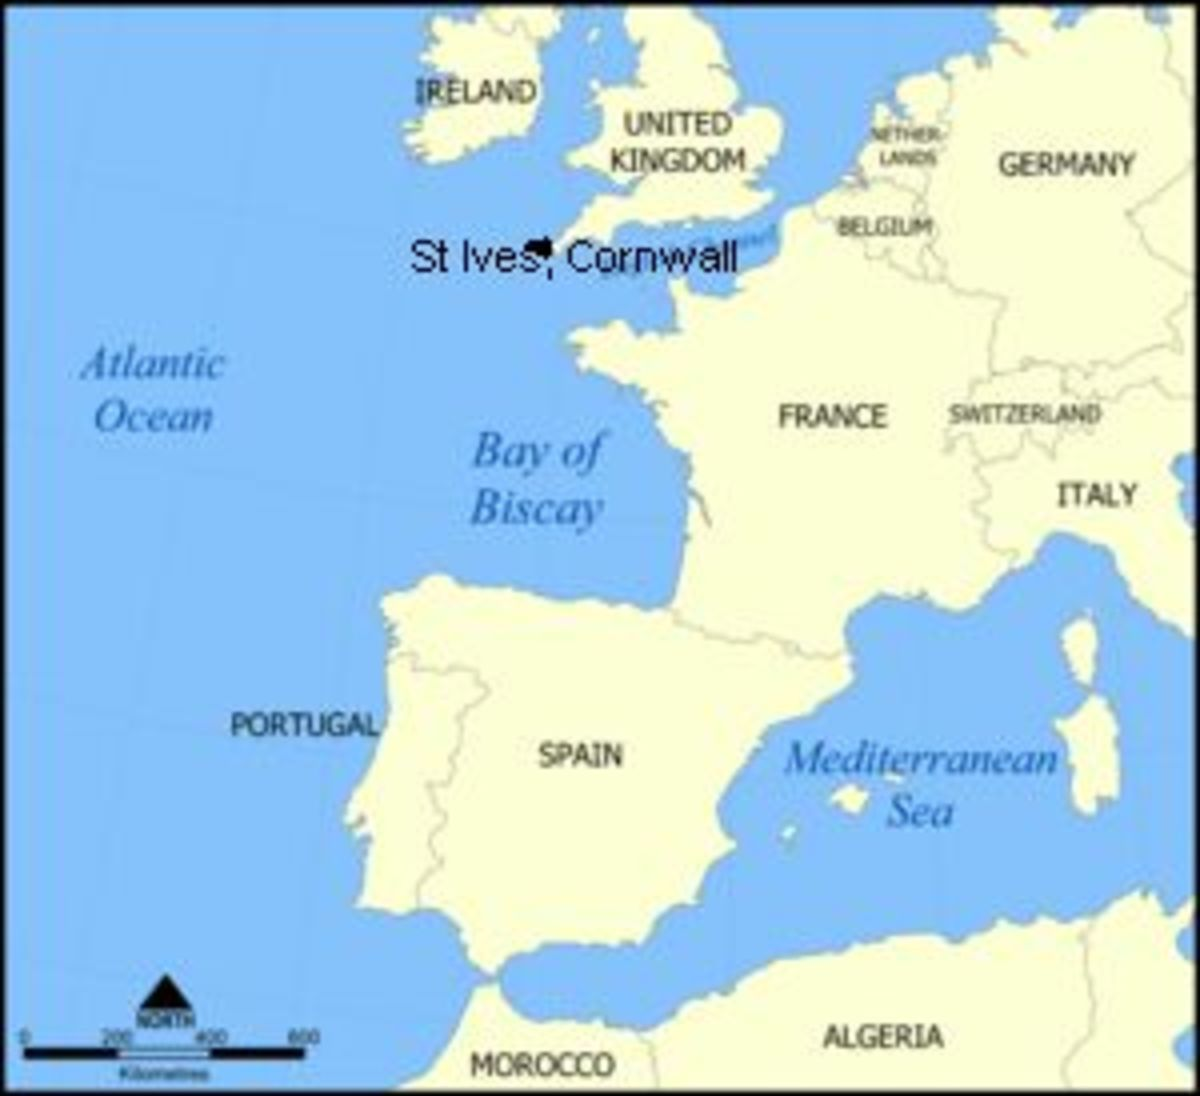 distance between Bay of Biscay, where oceanic whitetips are common, and the Cornish coastal waters